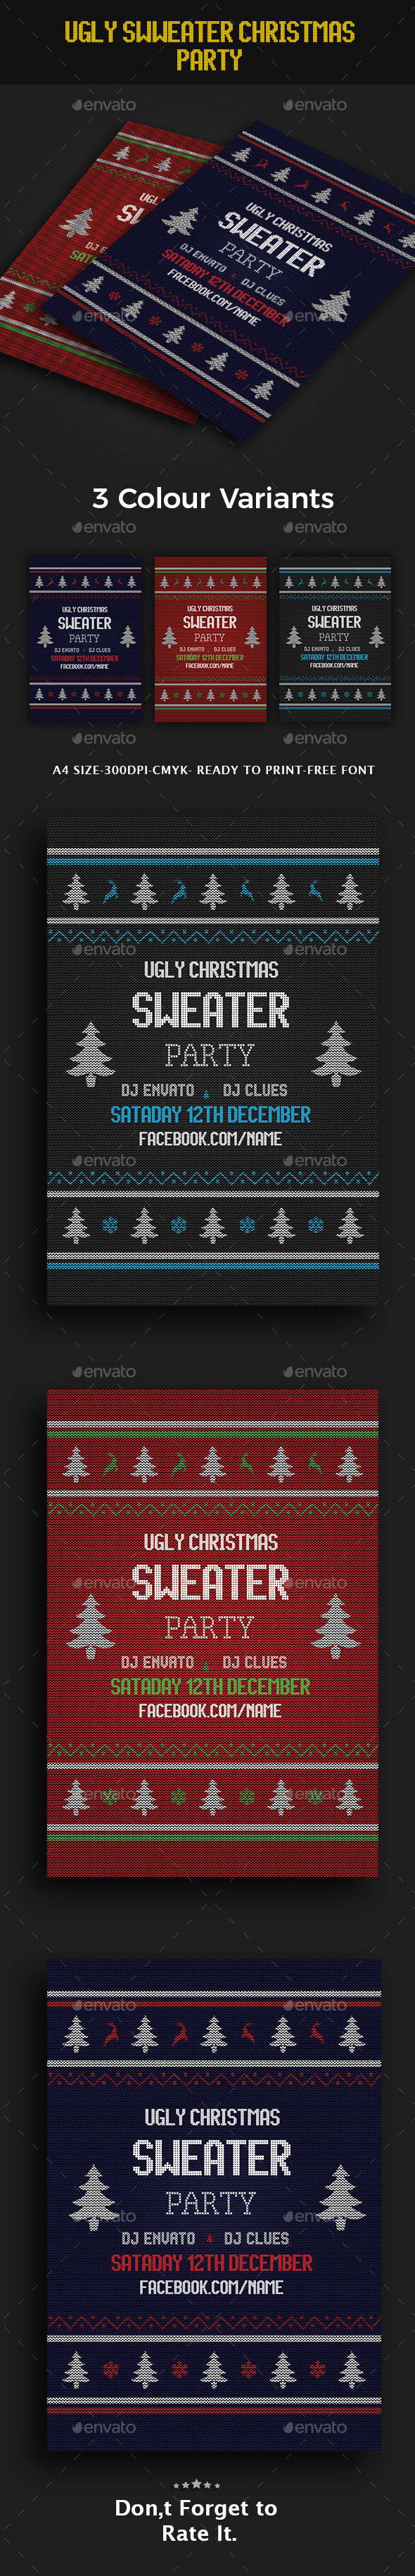 Ugly Sweater Party Flyer - Flyers Print Templates